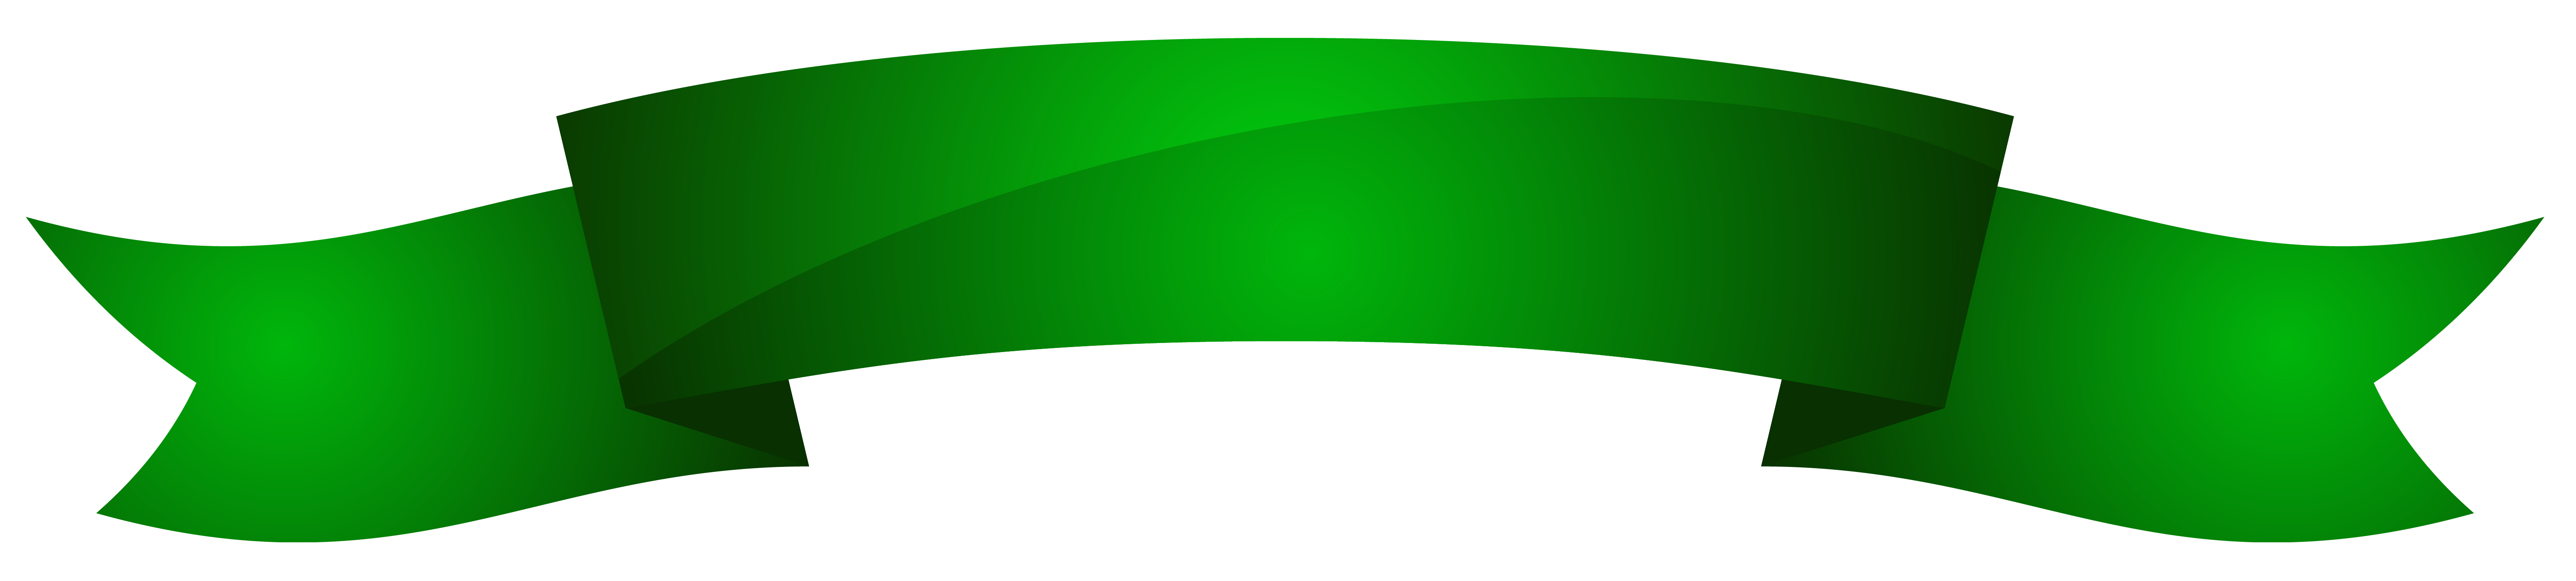 Green banner clipart png image